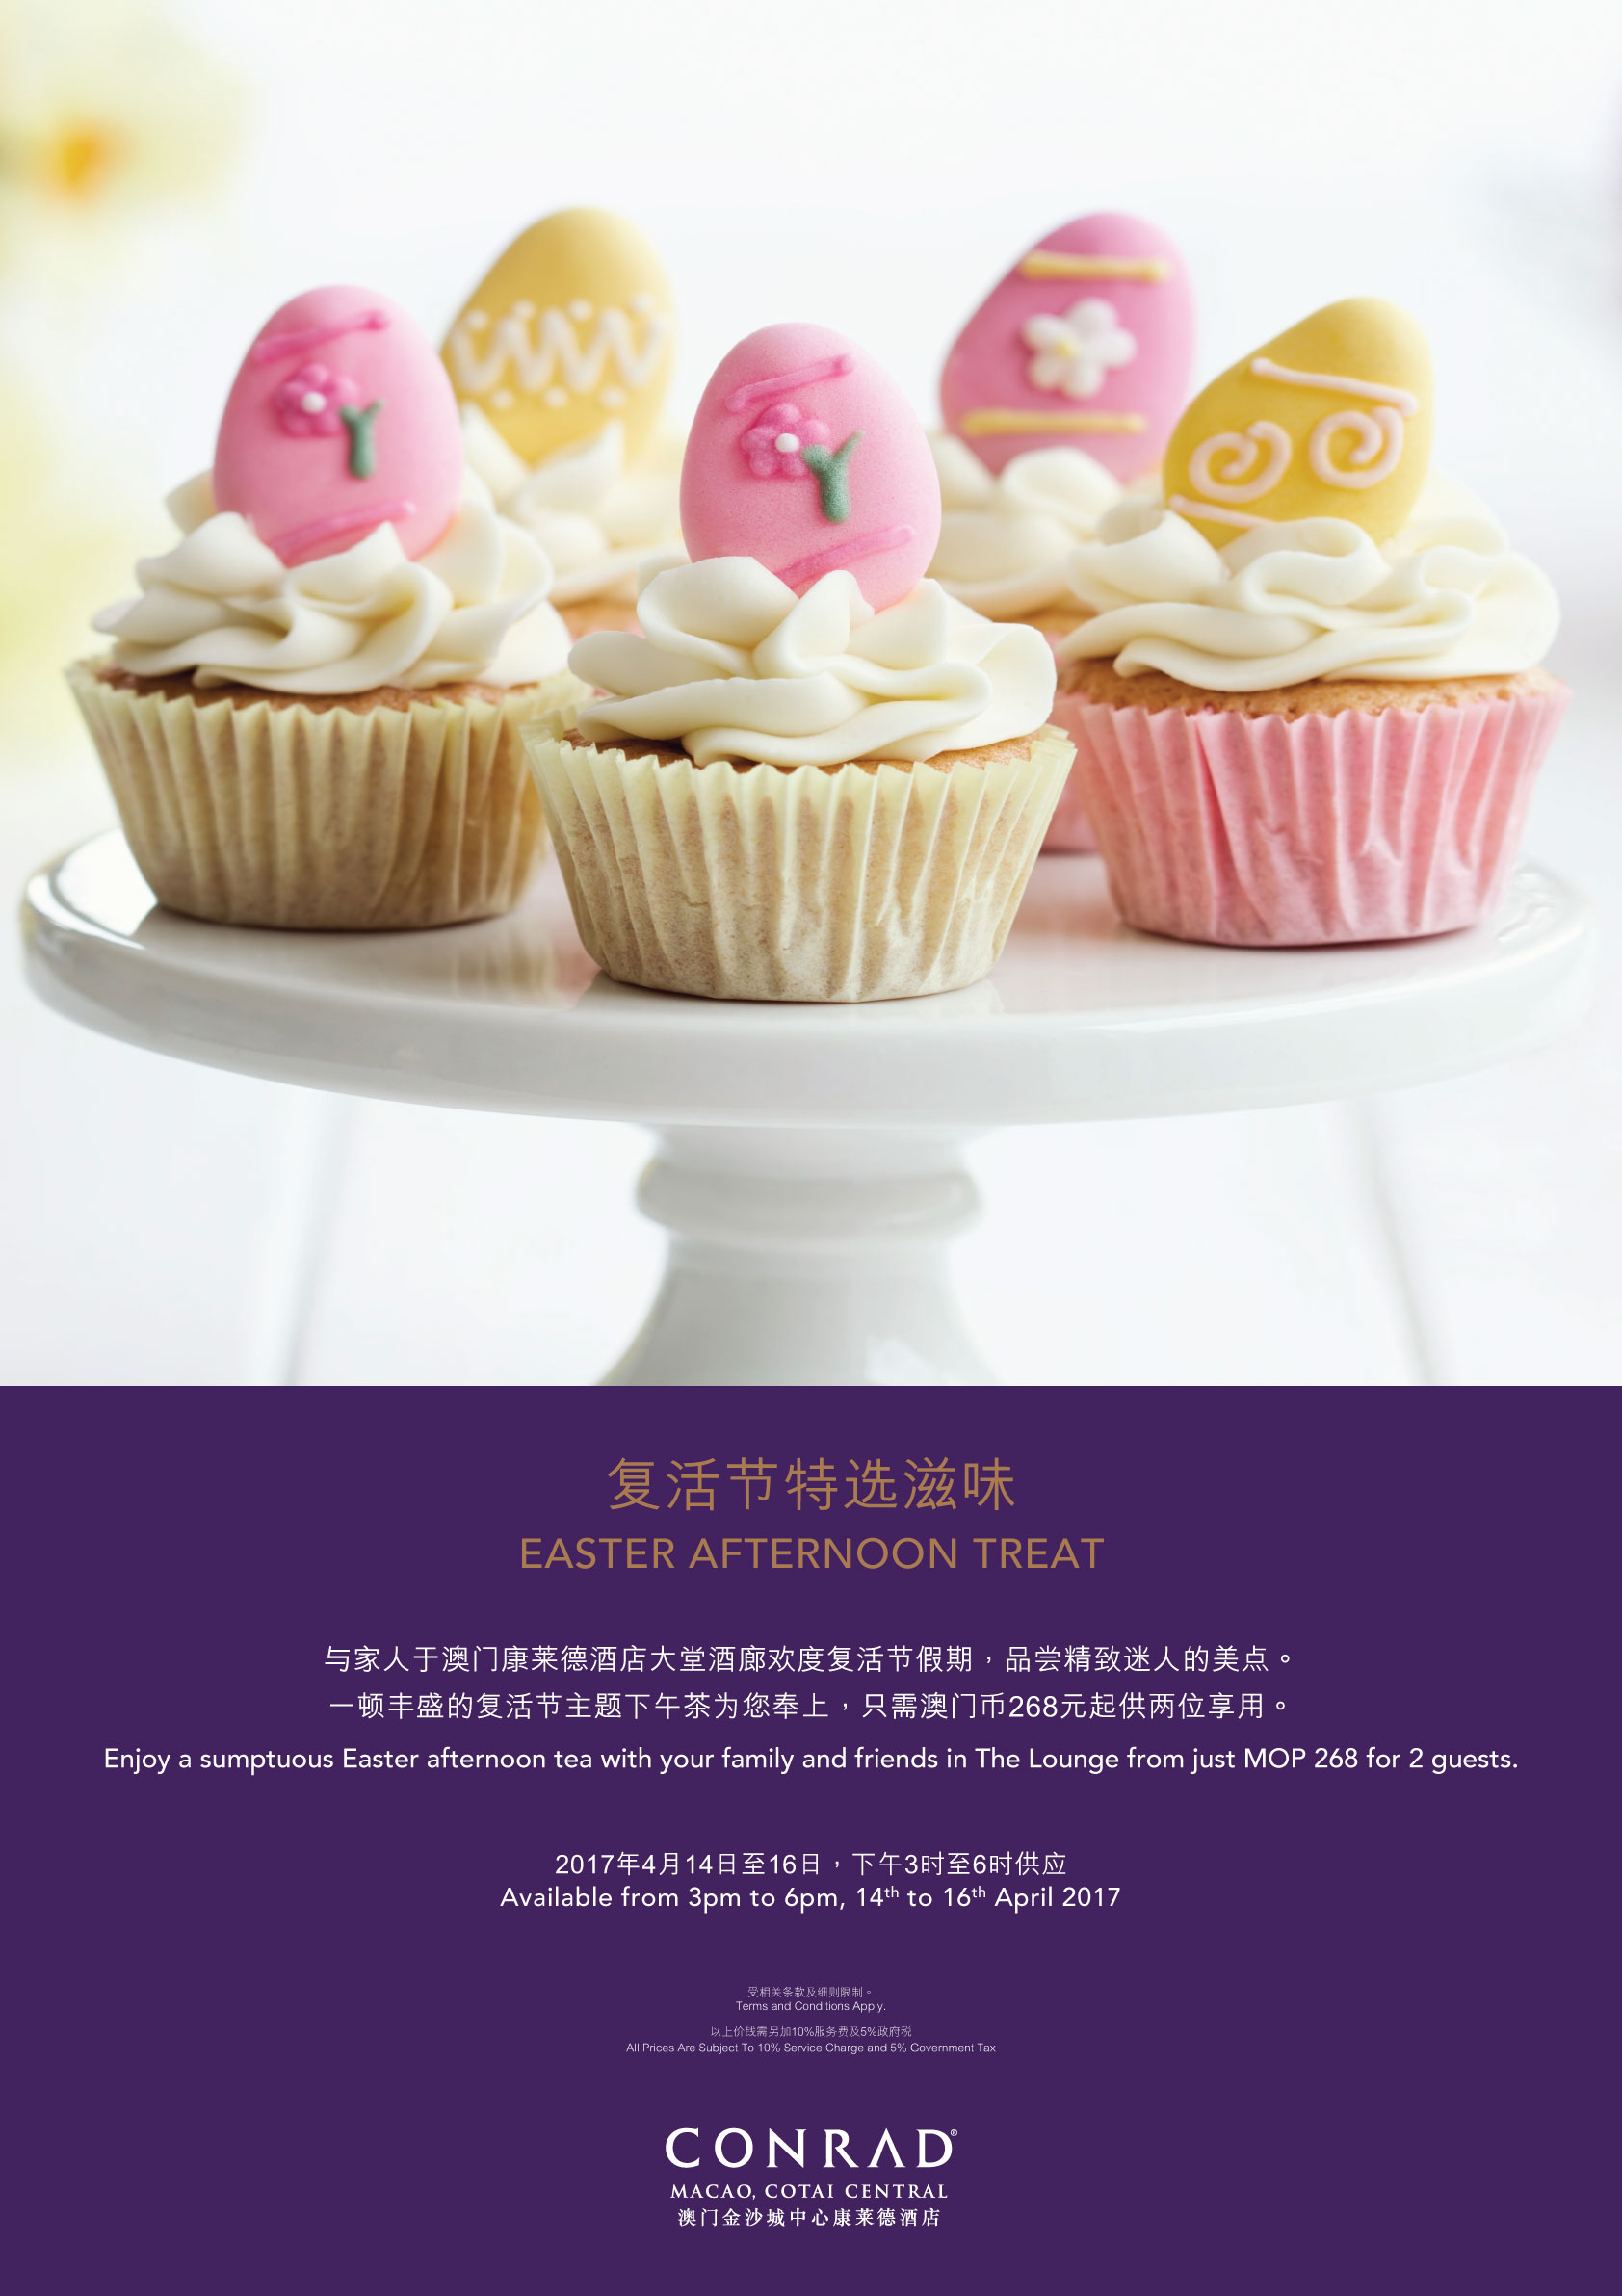 Enjoy_a_delightful_Easter_afternoon_at_the_Conrad_Lobby_Lounge